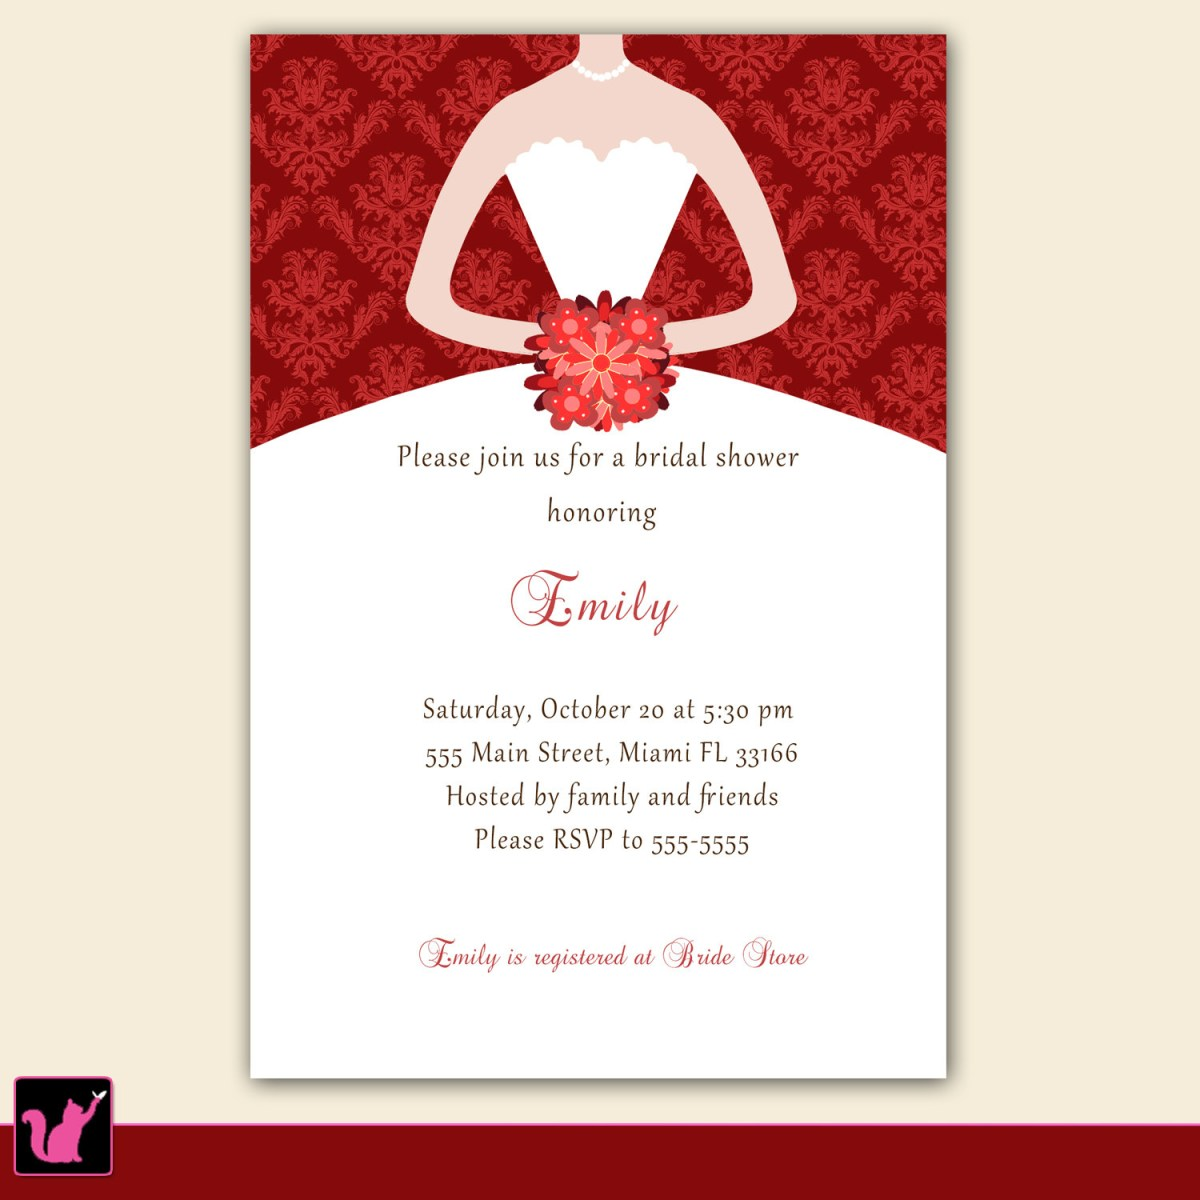 Free Wedding Shower Invitation Templates Photo Free Online Bridal Shower Invitation Image